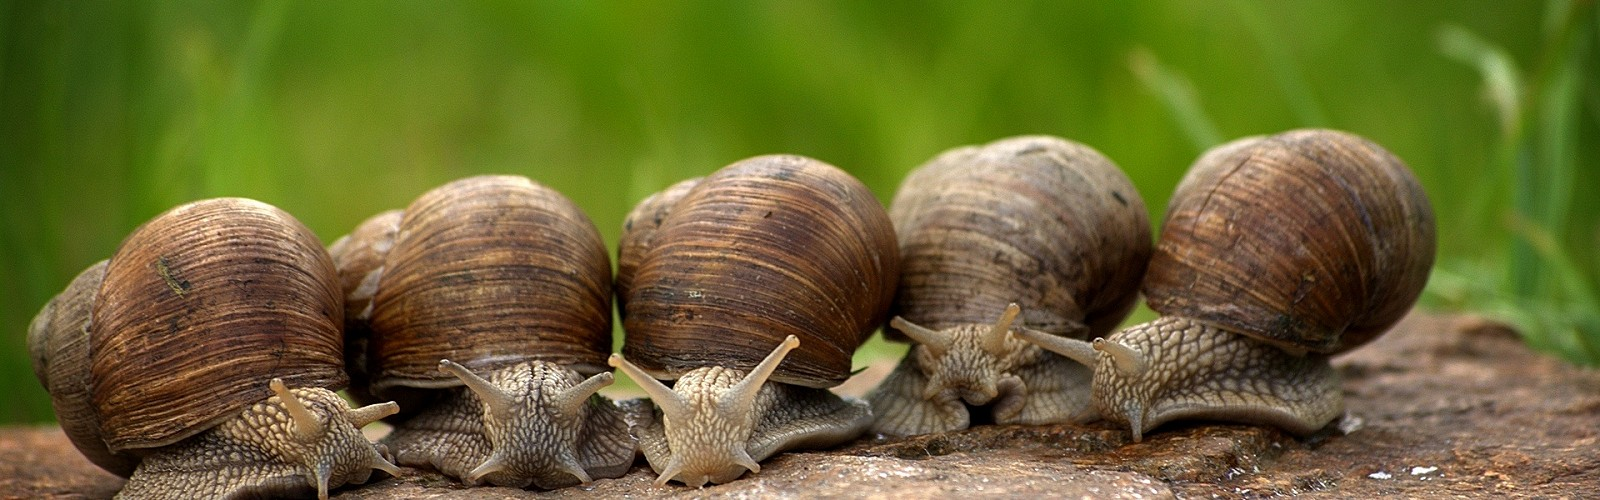 line of snails on a stone (image: Cablemarder / pixabay)